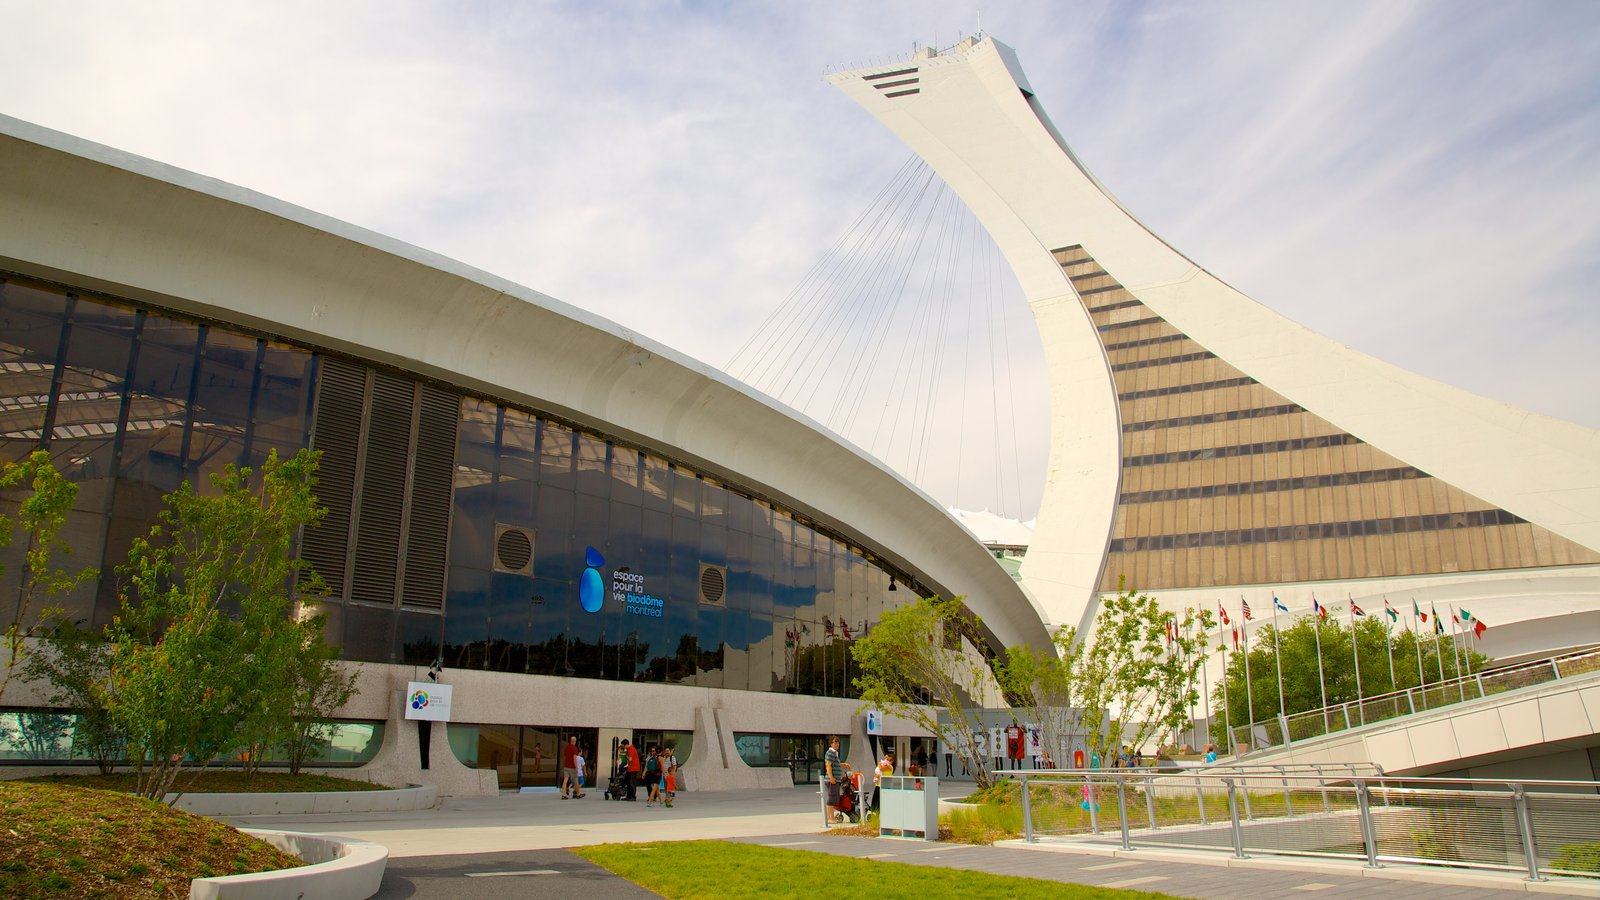 Montreal biodome pictures view photos images of for Architecture quebec